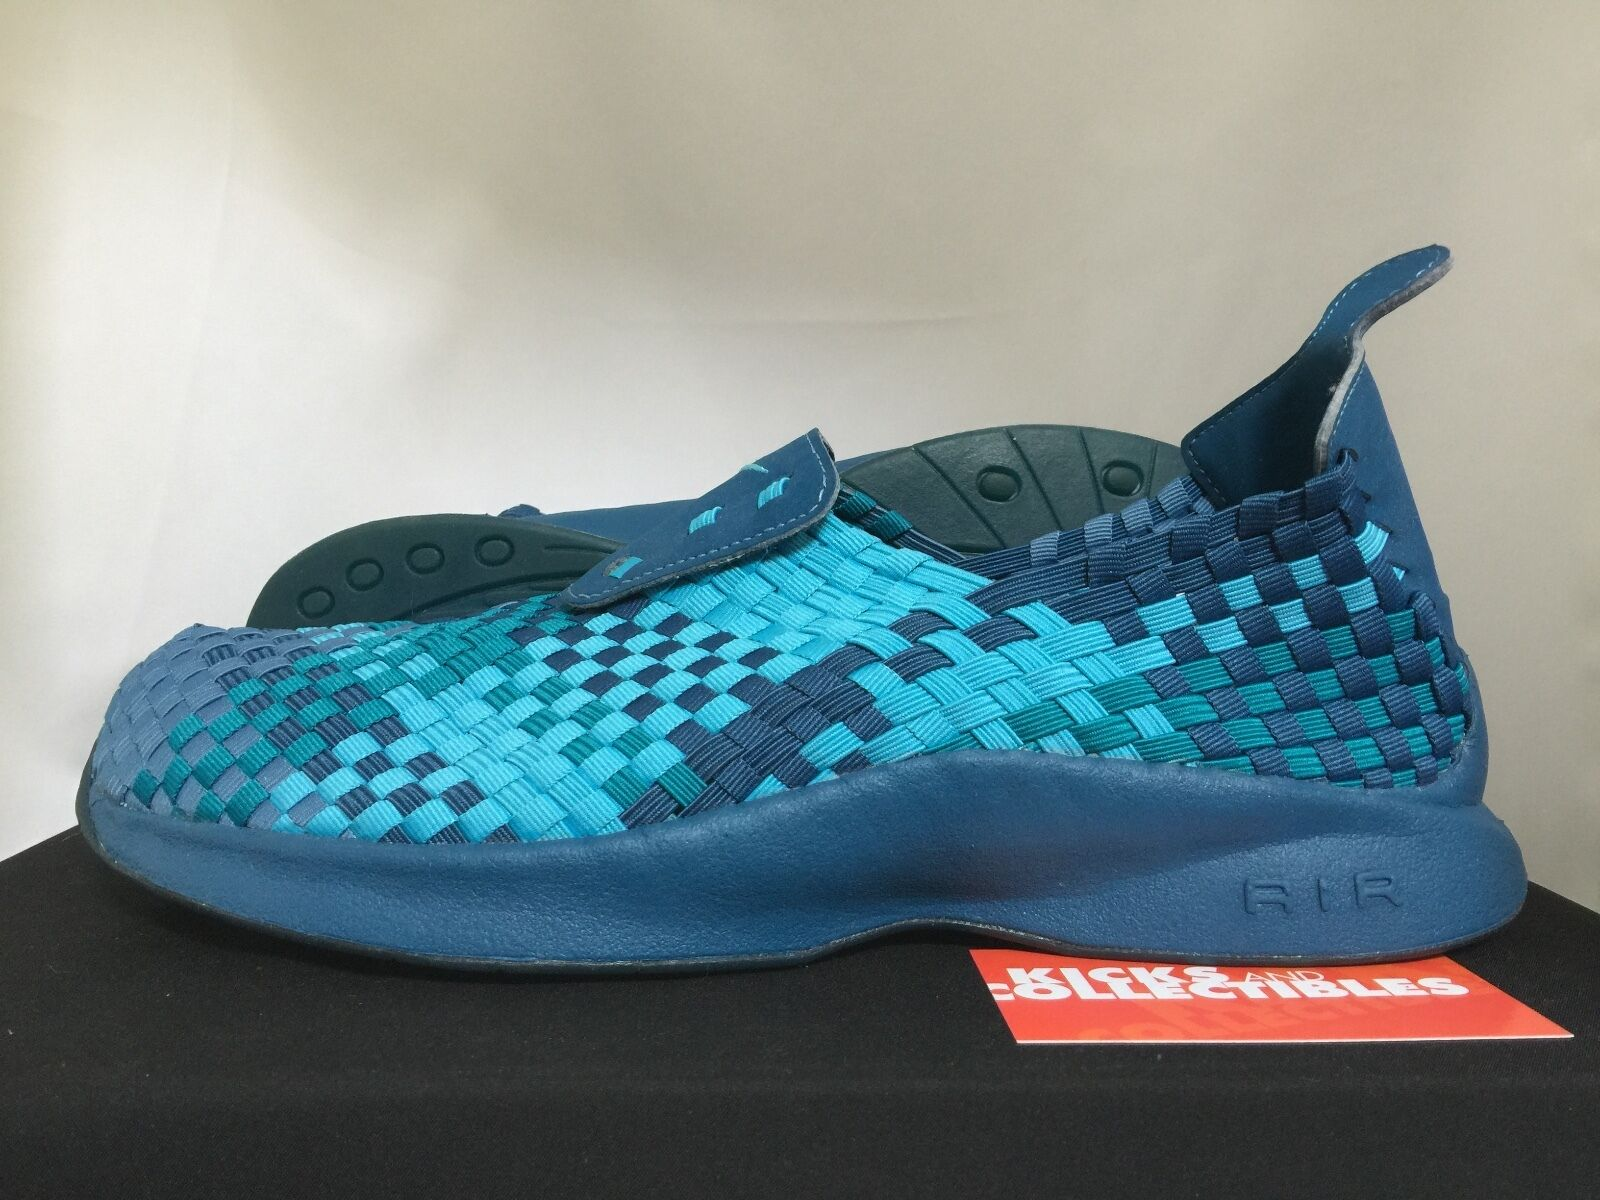 Nike Air WOVEN 609065 441 10  marina clearwater aquamarine blue chukka footscape Comfortable and good-looking